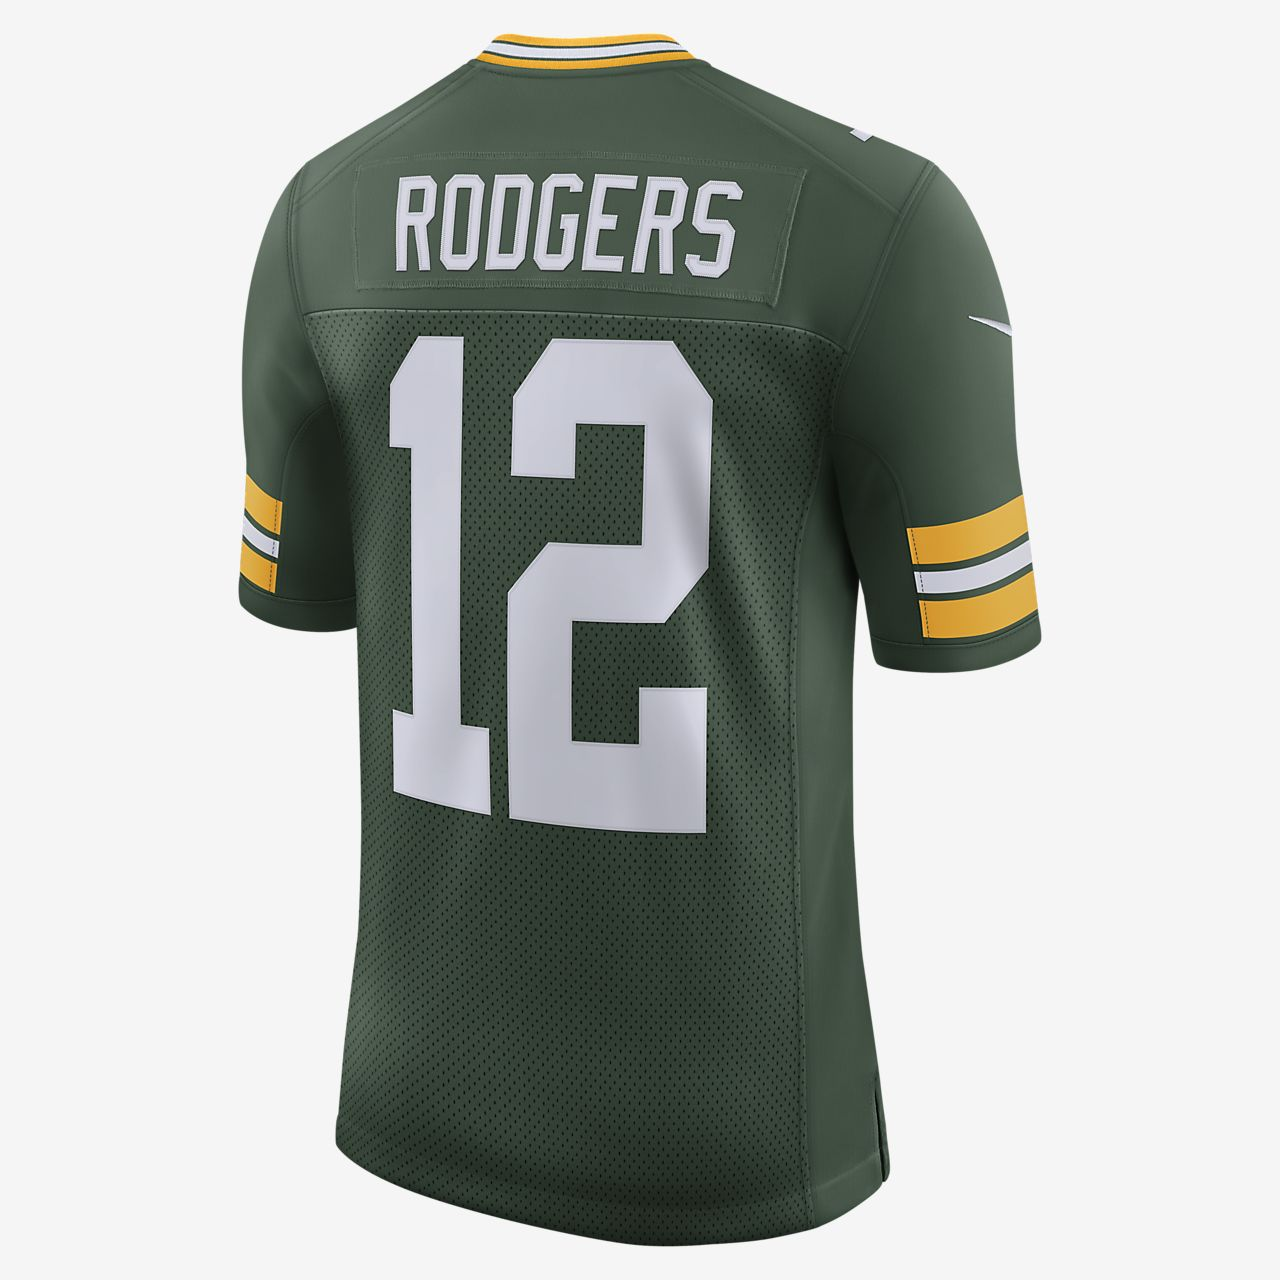 21bde46bd ... NFL Green Bay Packers (Aaron Rodgers) Men s Football Home Limited Jersey